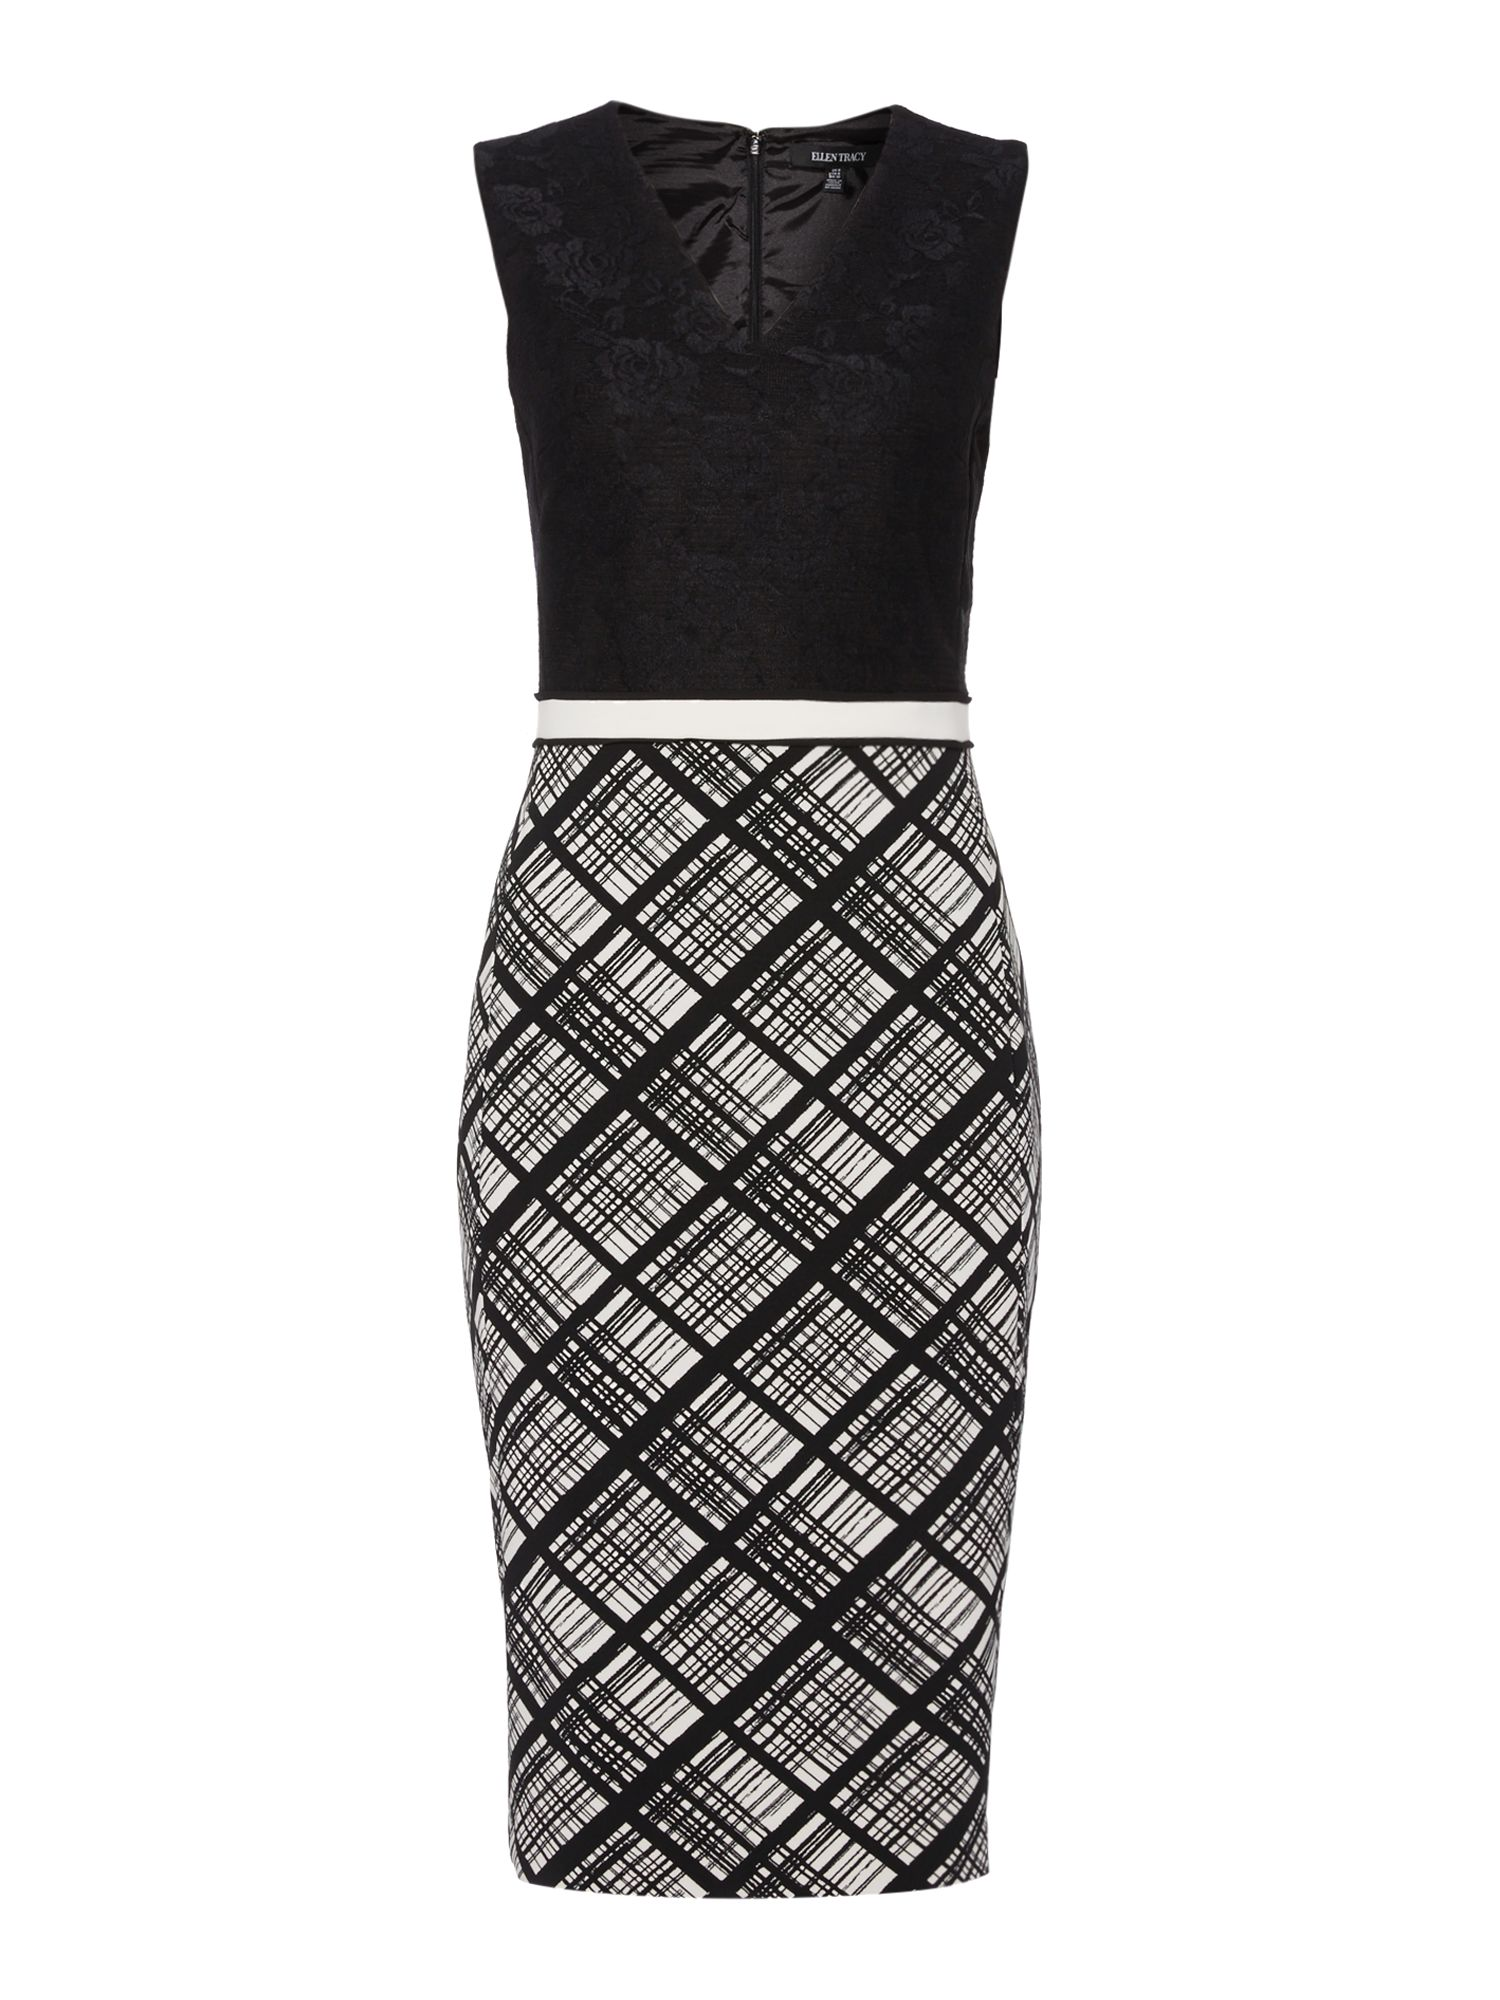 Ellen Tracy Bonded lace fitted dress, Black/White